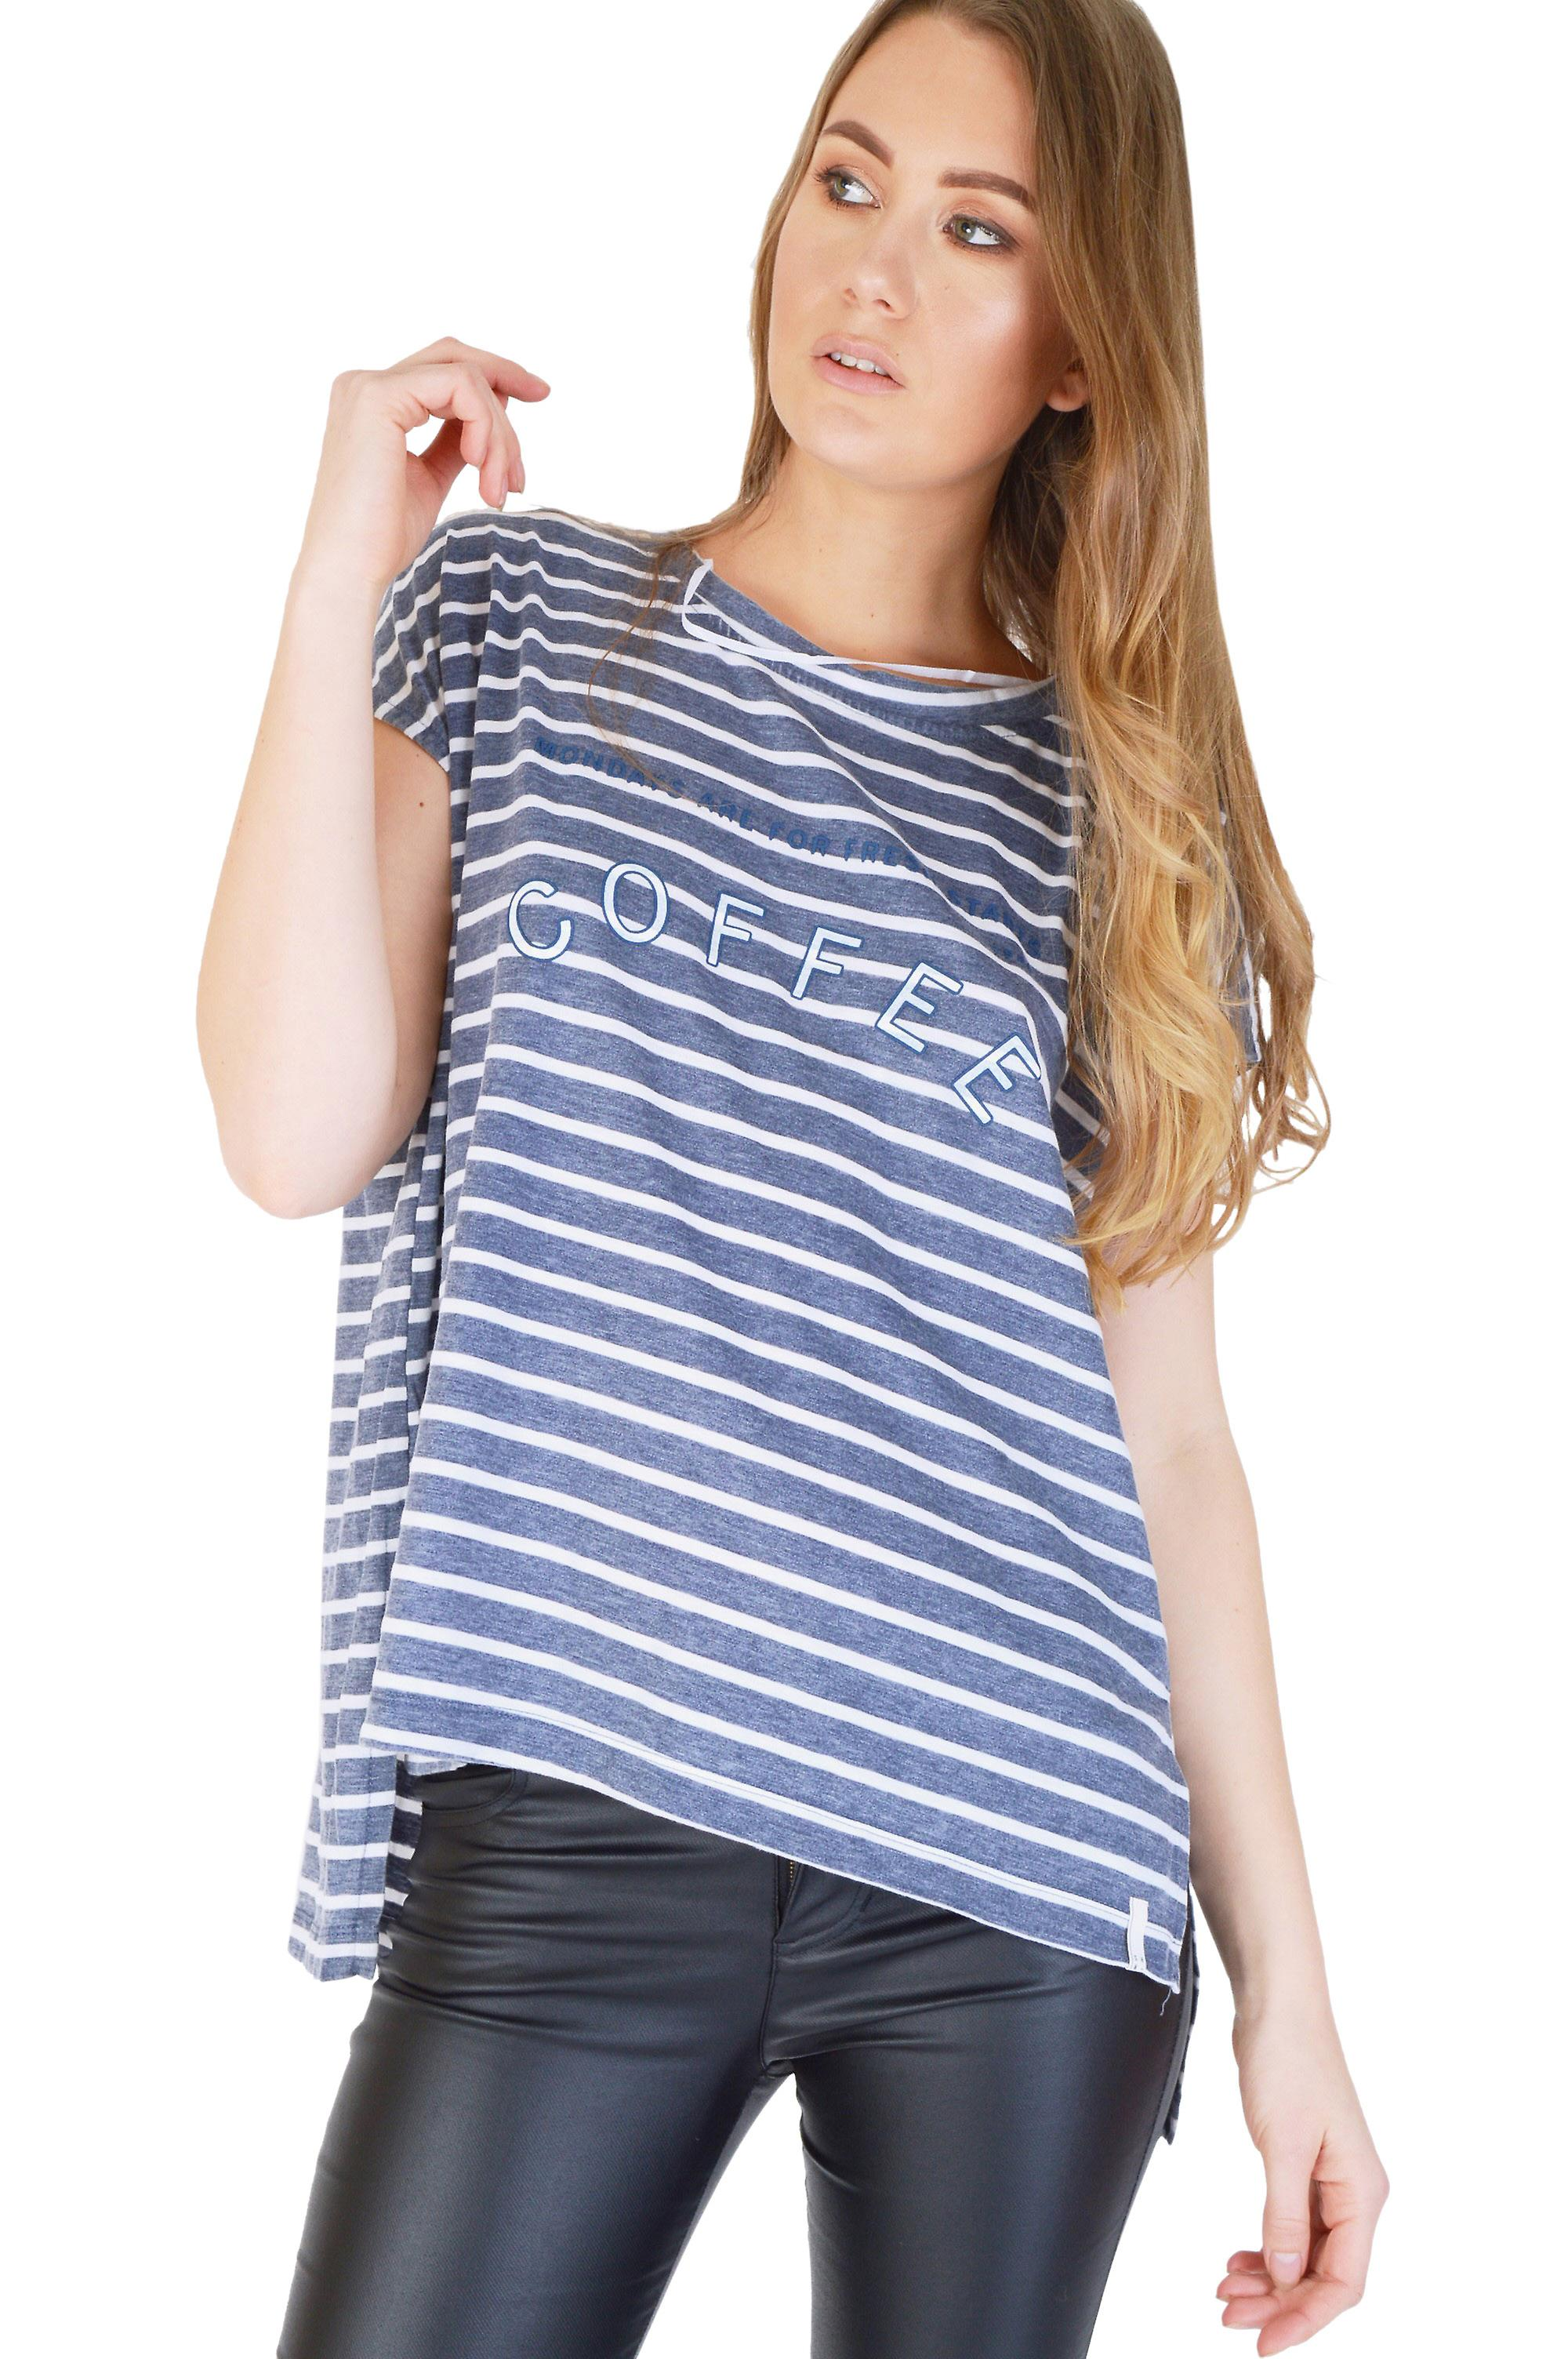 SHN Oversized Blue And White Stripe T-Shirt With 'Coffee' Slogan